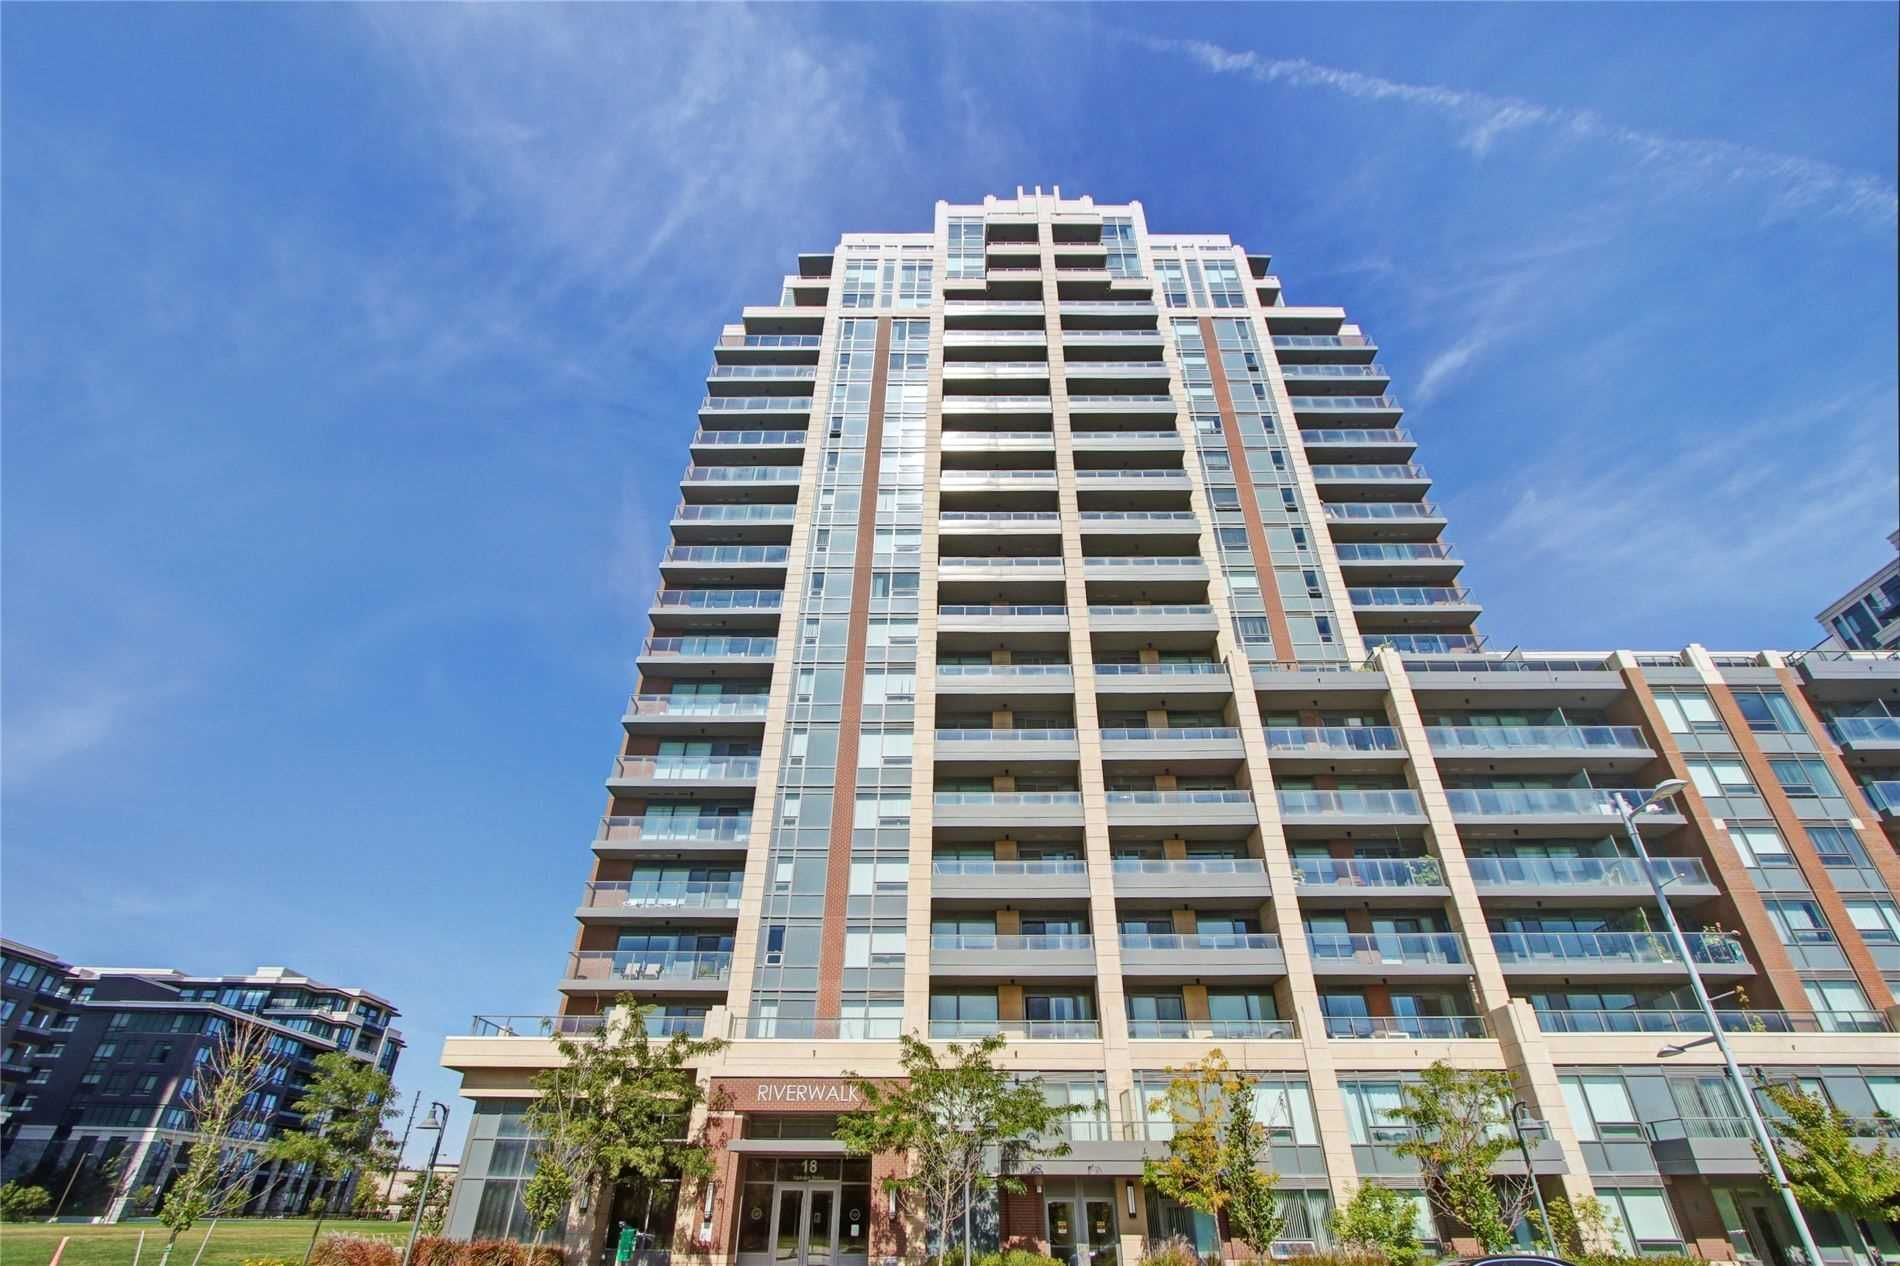 Main Photo: 18 Uptown Dr 820 in Markham: Condo for sale : MLS®# N4584567